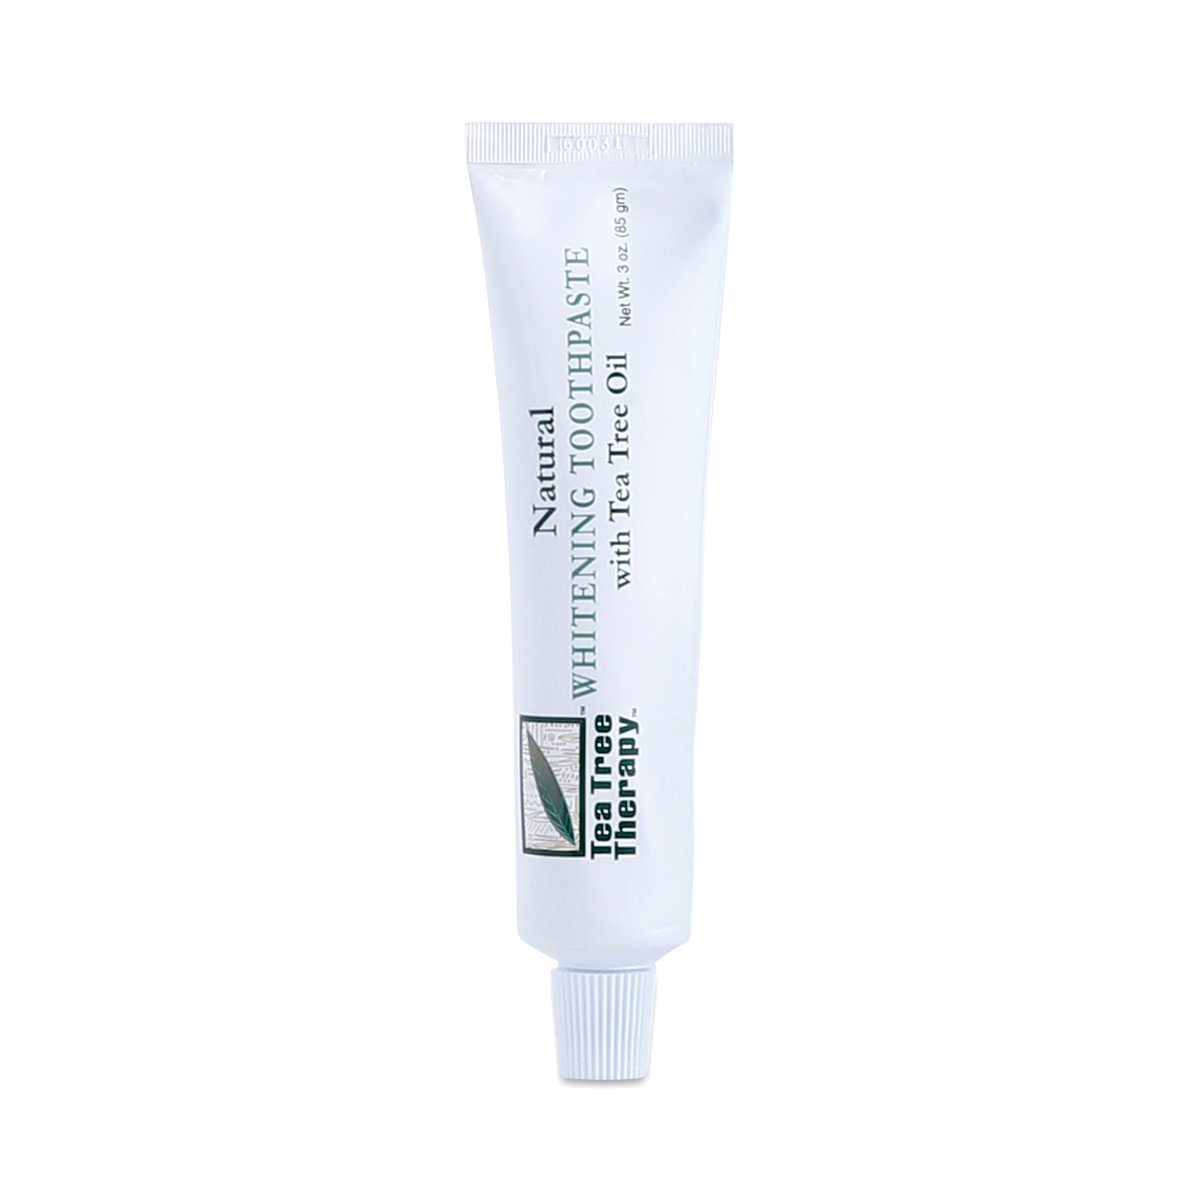 Whitening Toothpaste with Tea Tree Oil